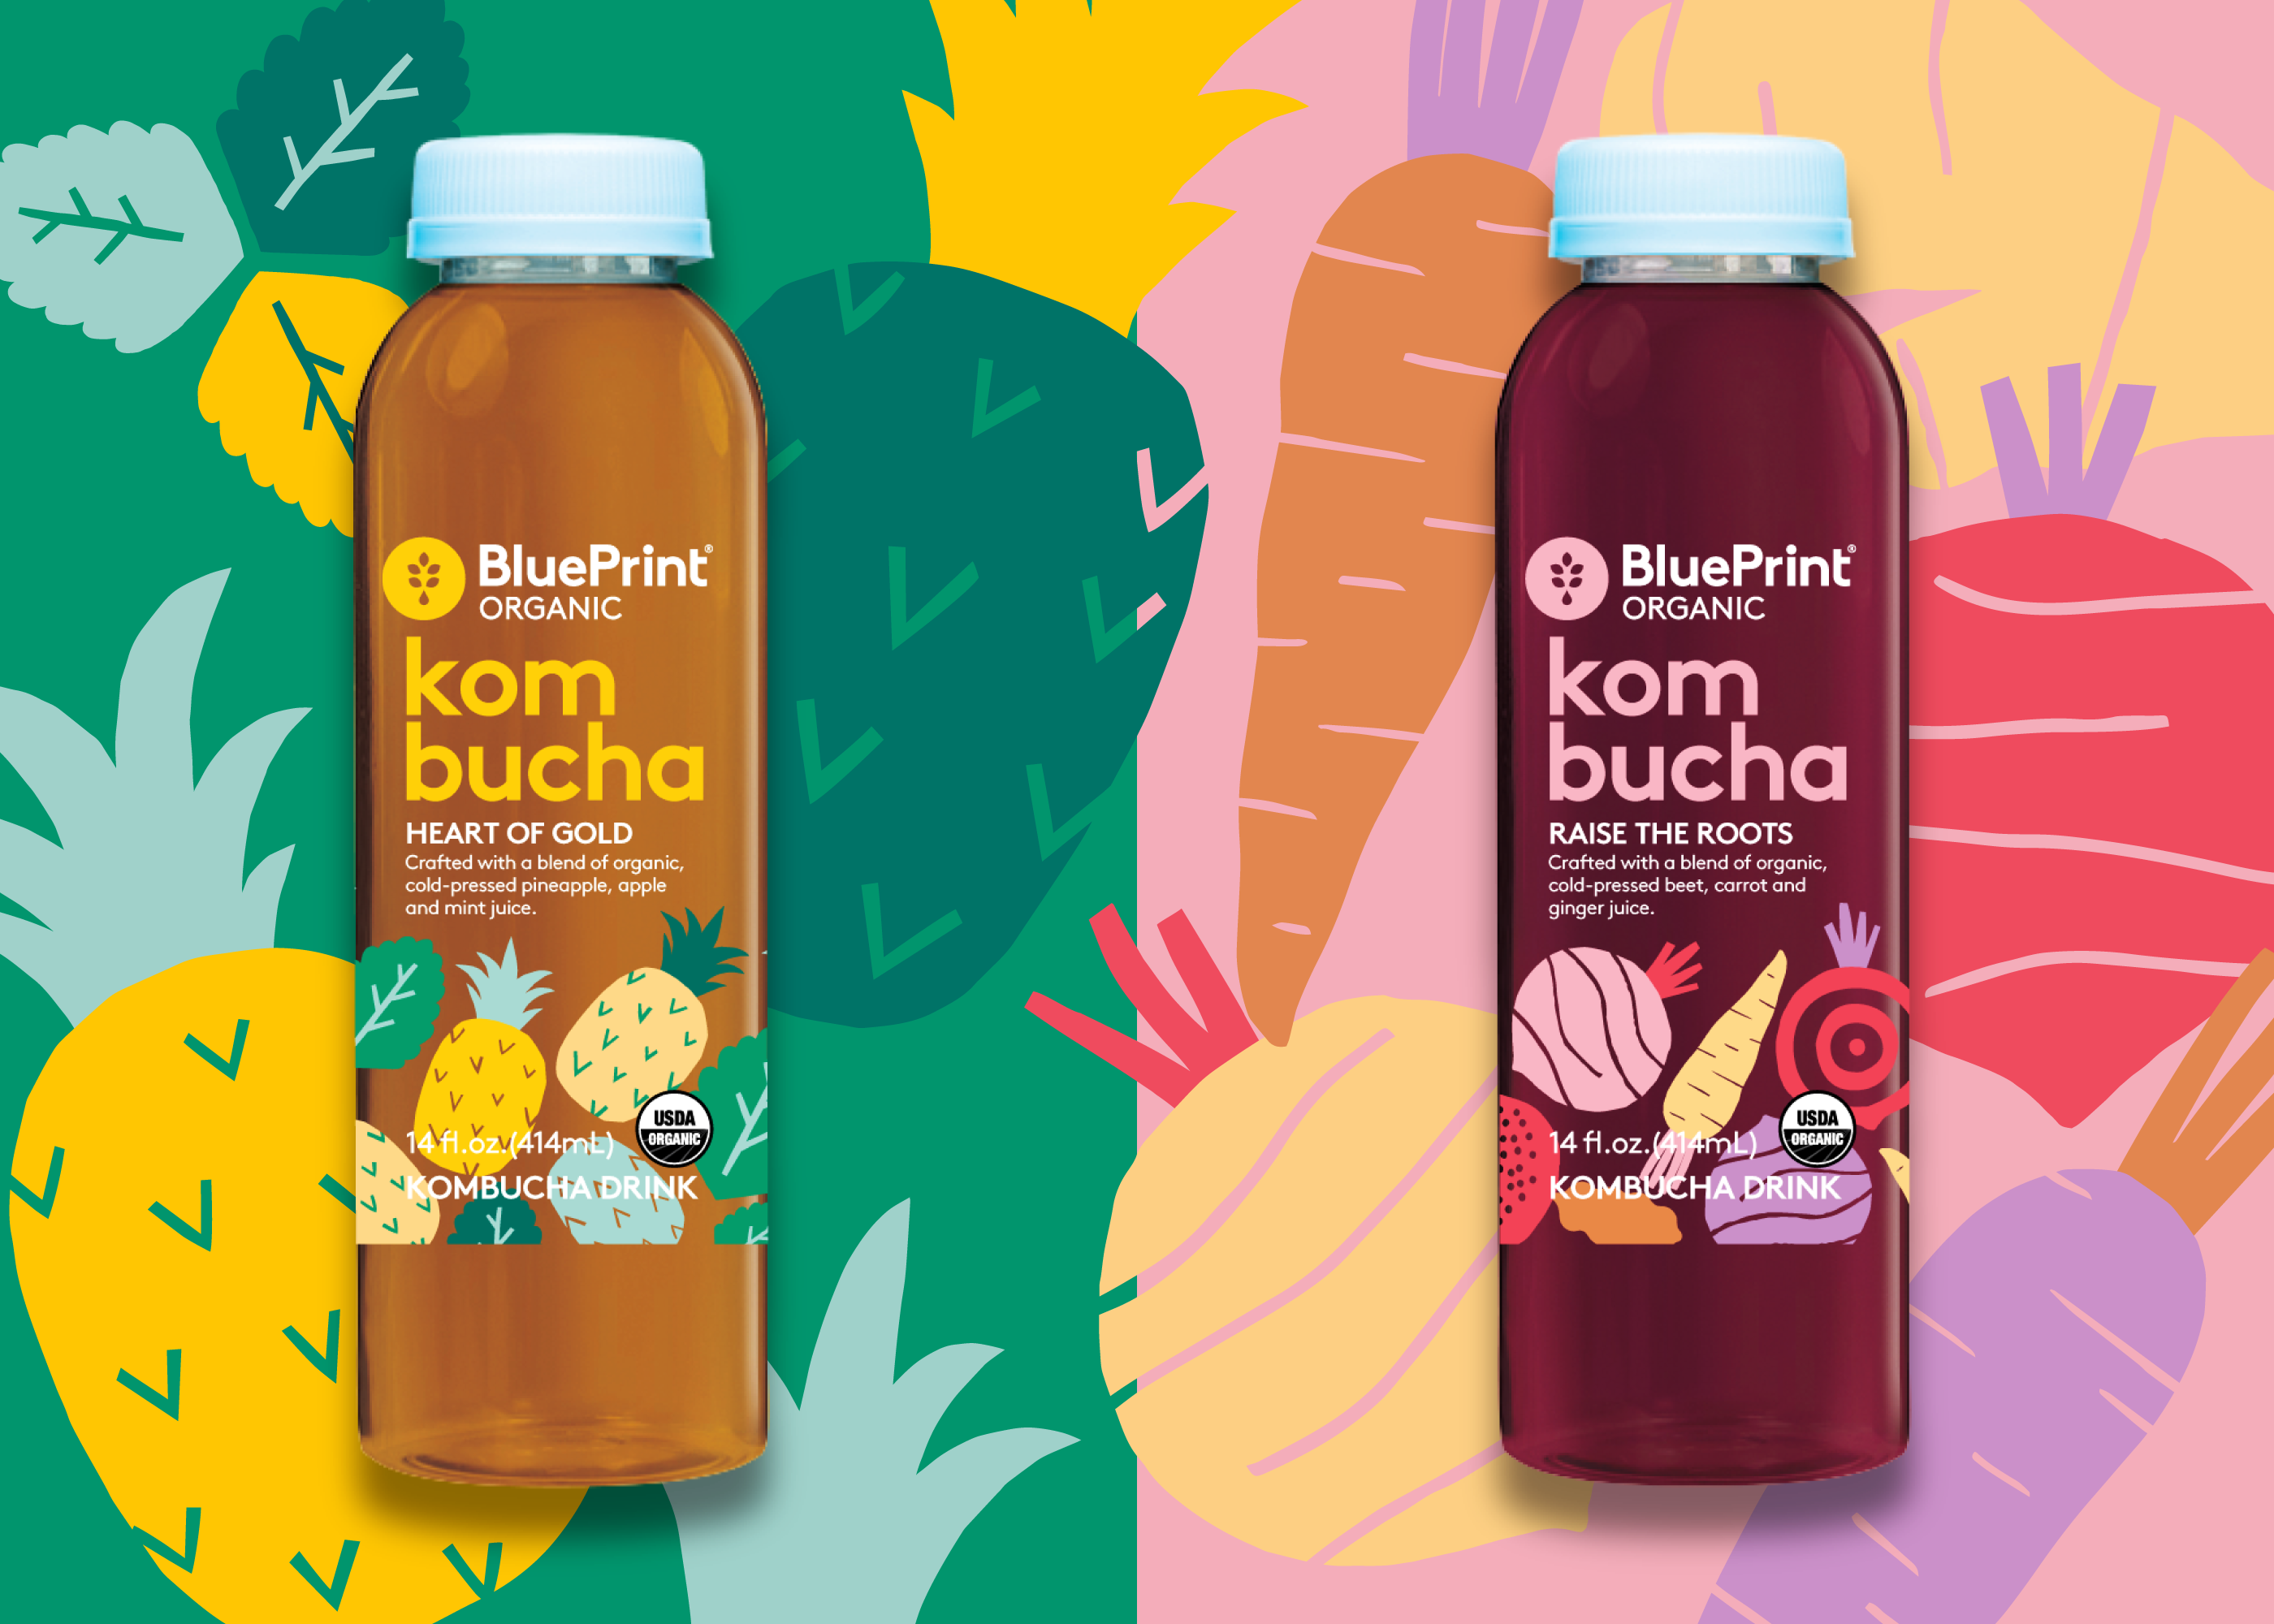 Illustration for a new line of kombucha drinks from blueprint the illustration for a new line of kombucha drinks from blueprint the illustrations are based on malvernweather Image collections